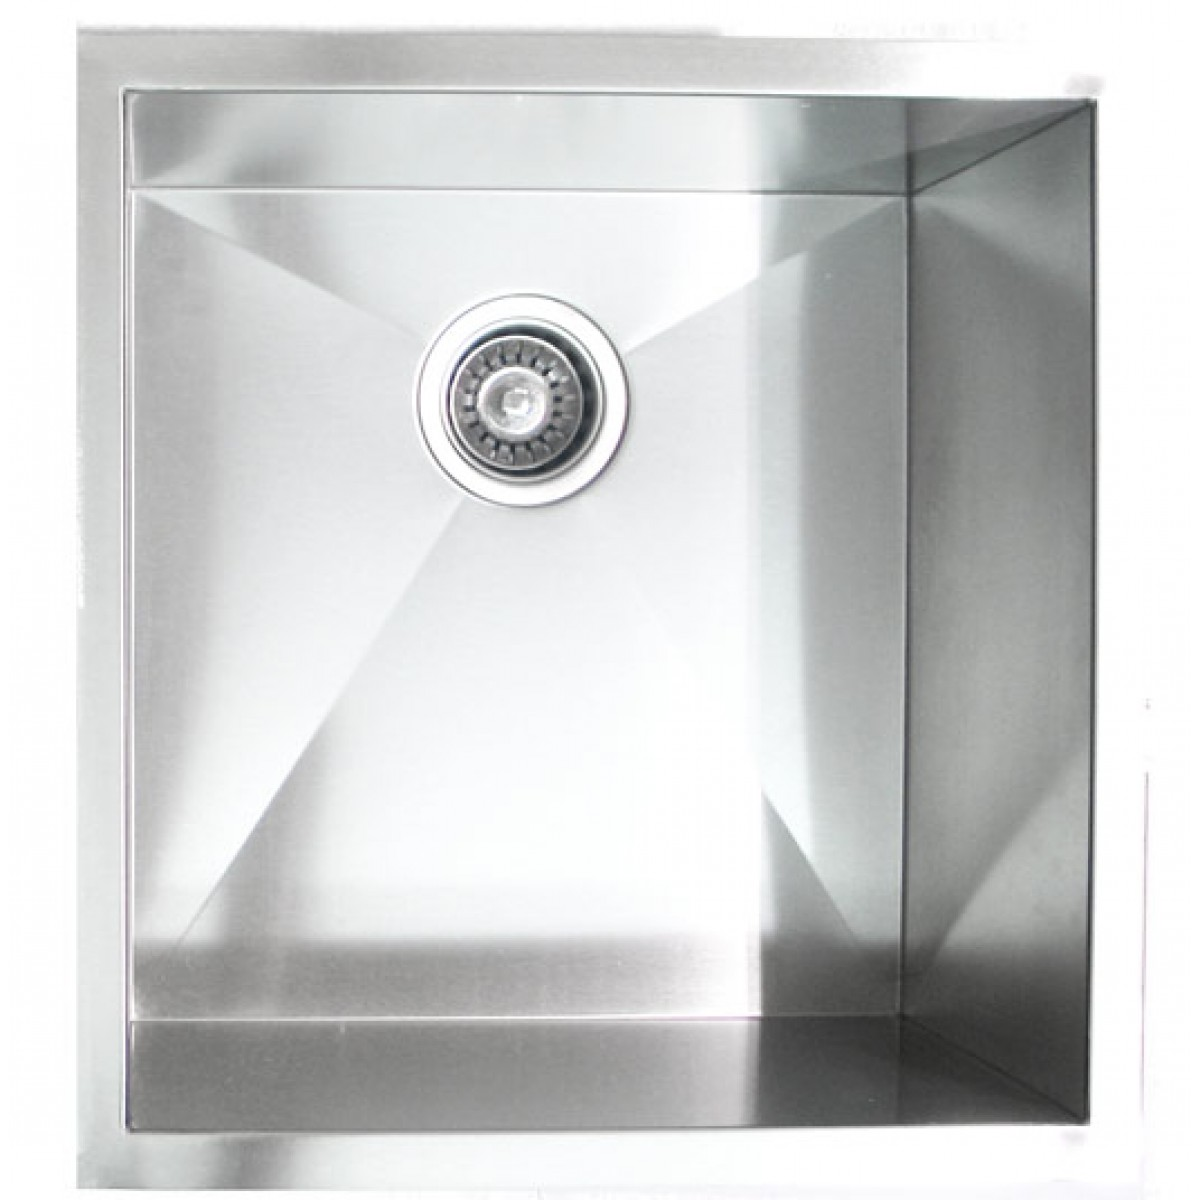 Beau 19 Inch Stainless Steel Undermount Single Bowl Kitchen / Bar / Prep Sink  Zero Radius Design